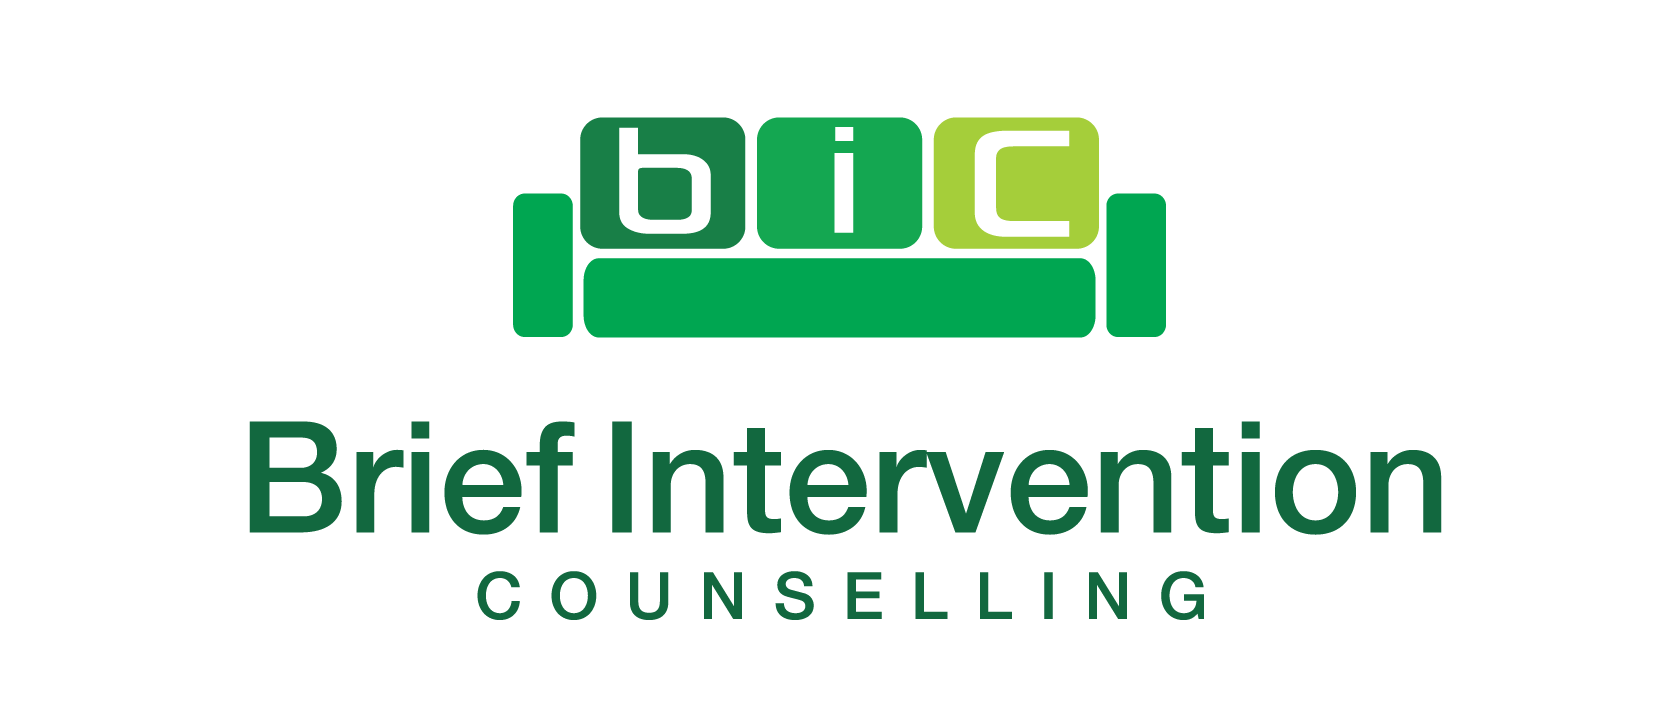 Brief Intervention Counselling